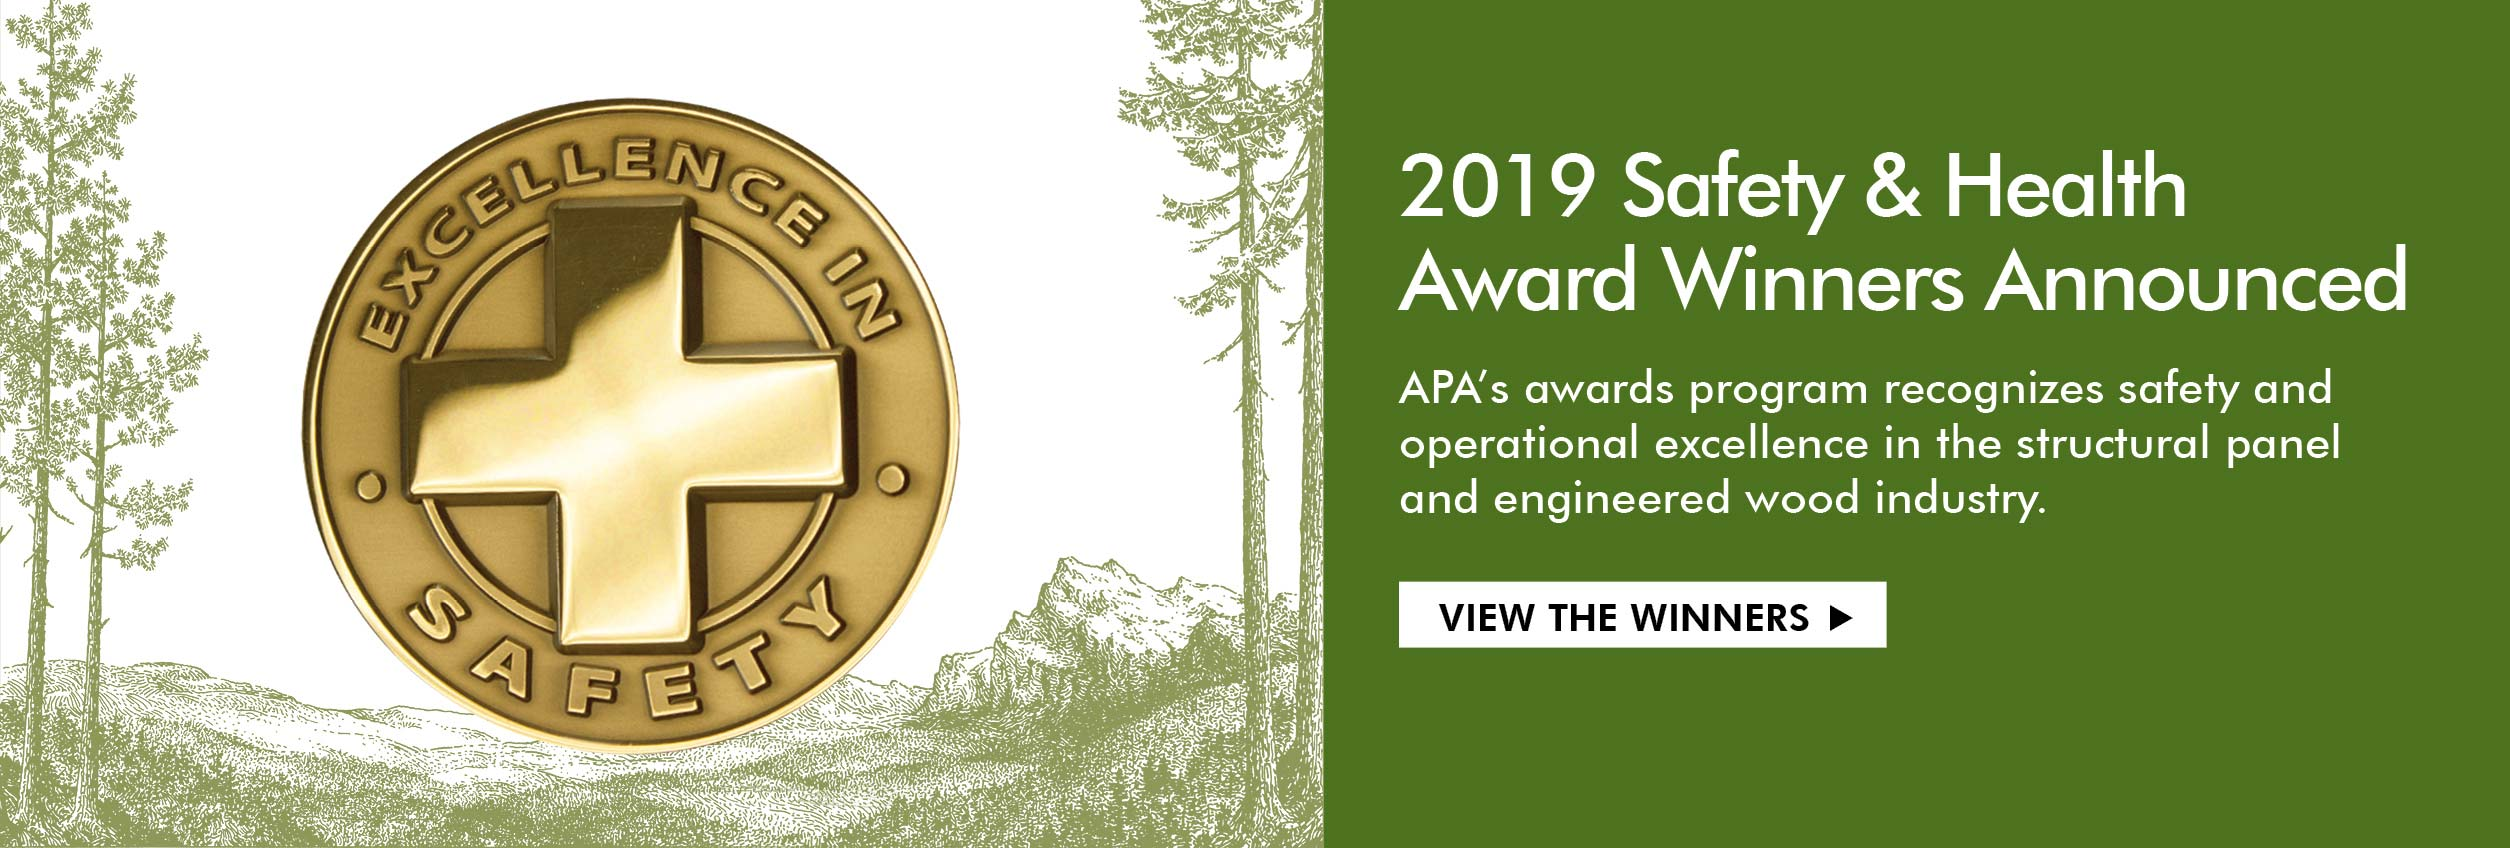 APA 2019 Safety & Health Awards